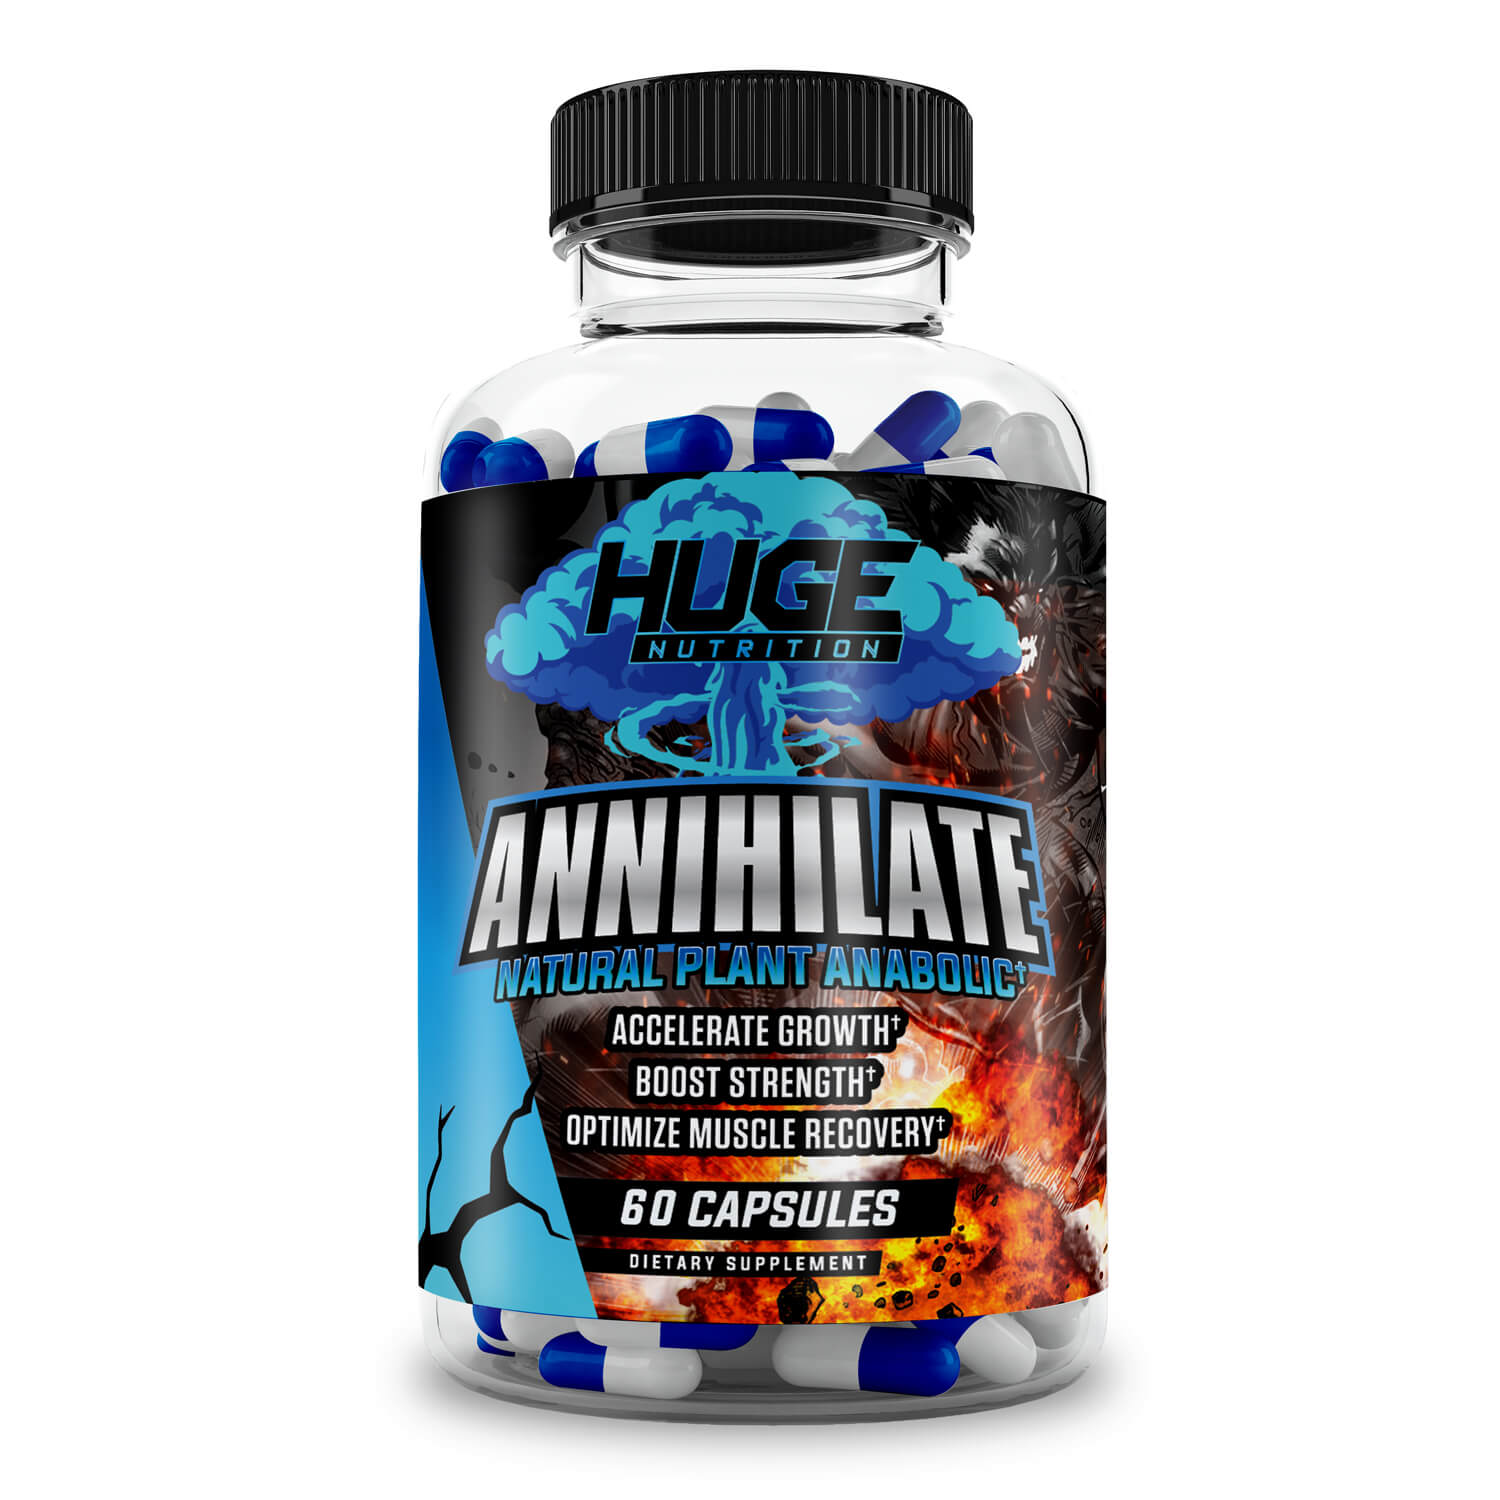 Annihilate Review: #1 Insane New Plant Anabolic Supplement?